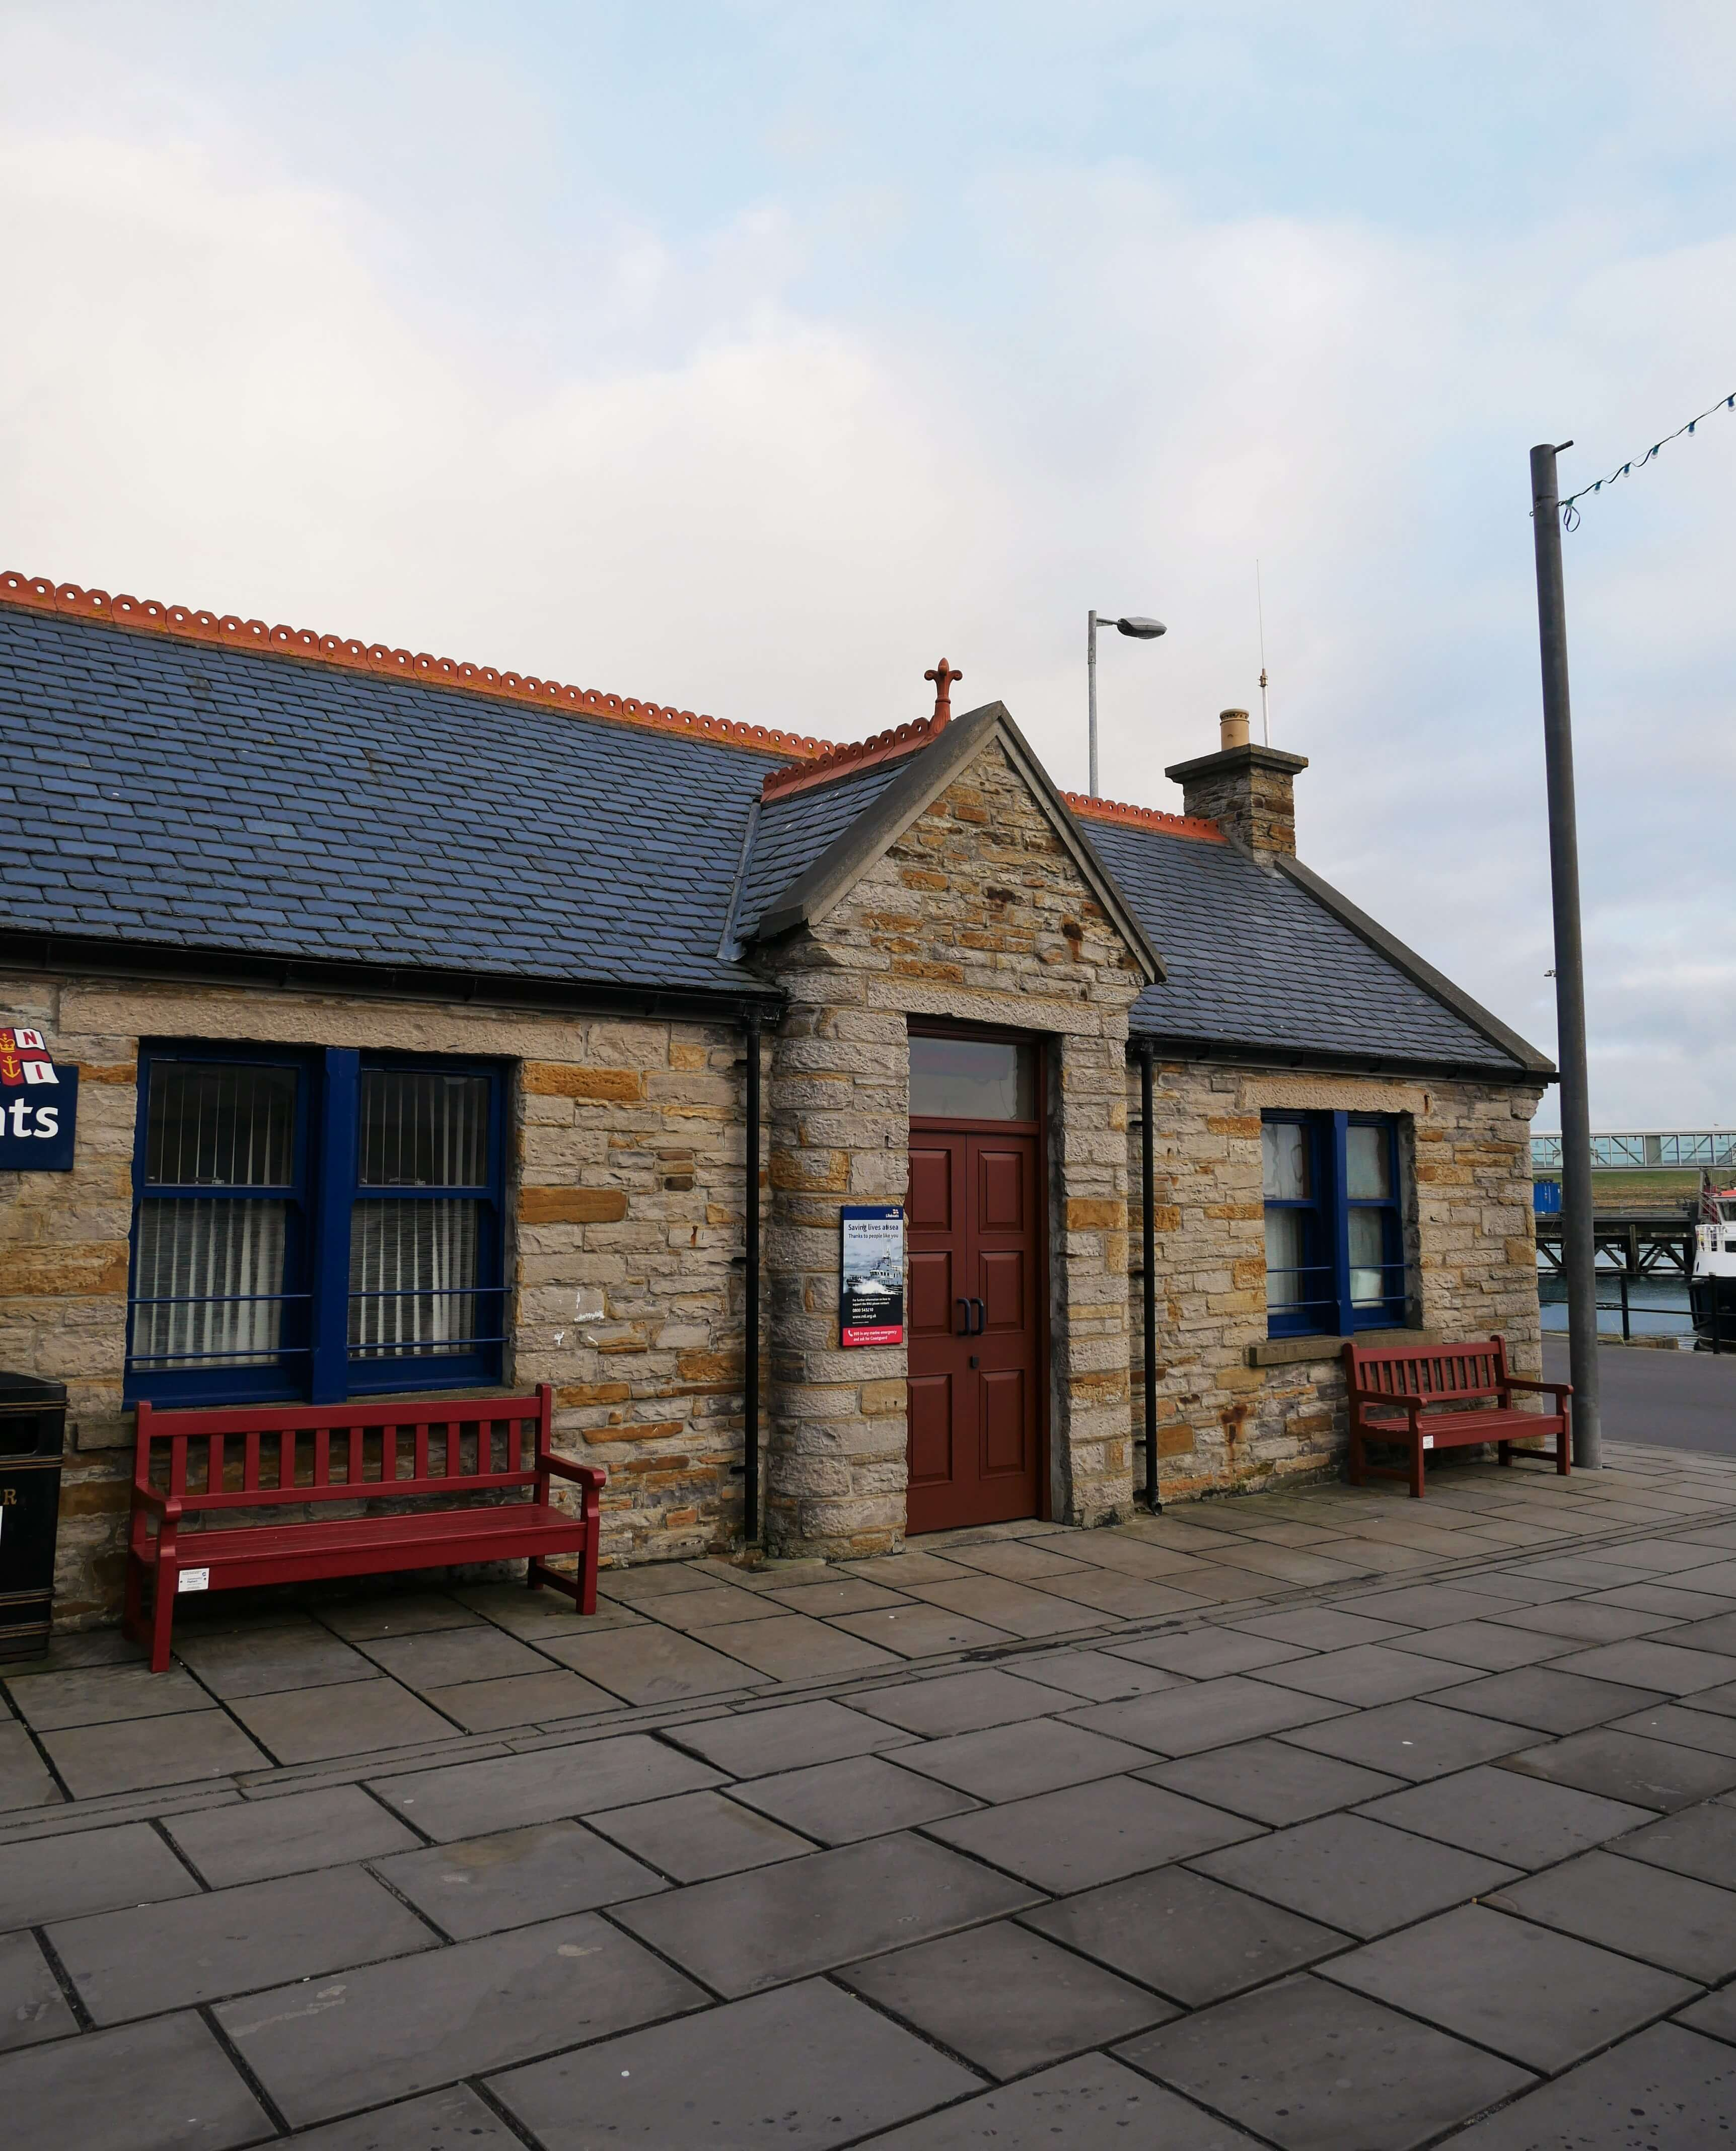 Spot in Stromness, Orkney, Scotland where Orcadian writer GMB used to while away the hours talking with his friends